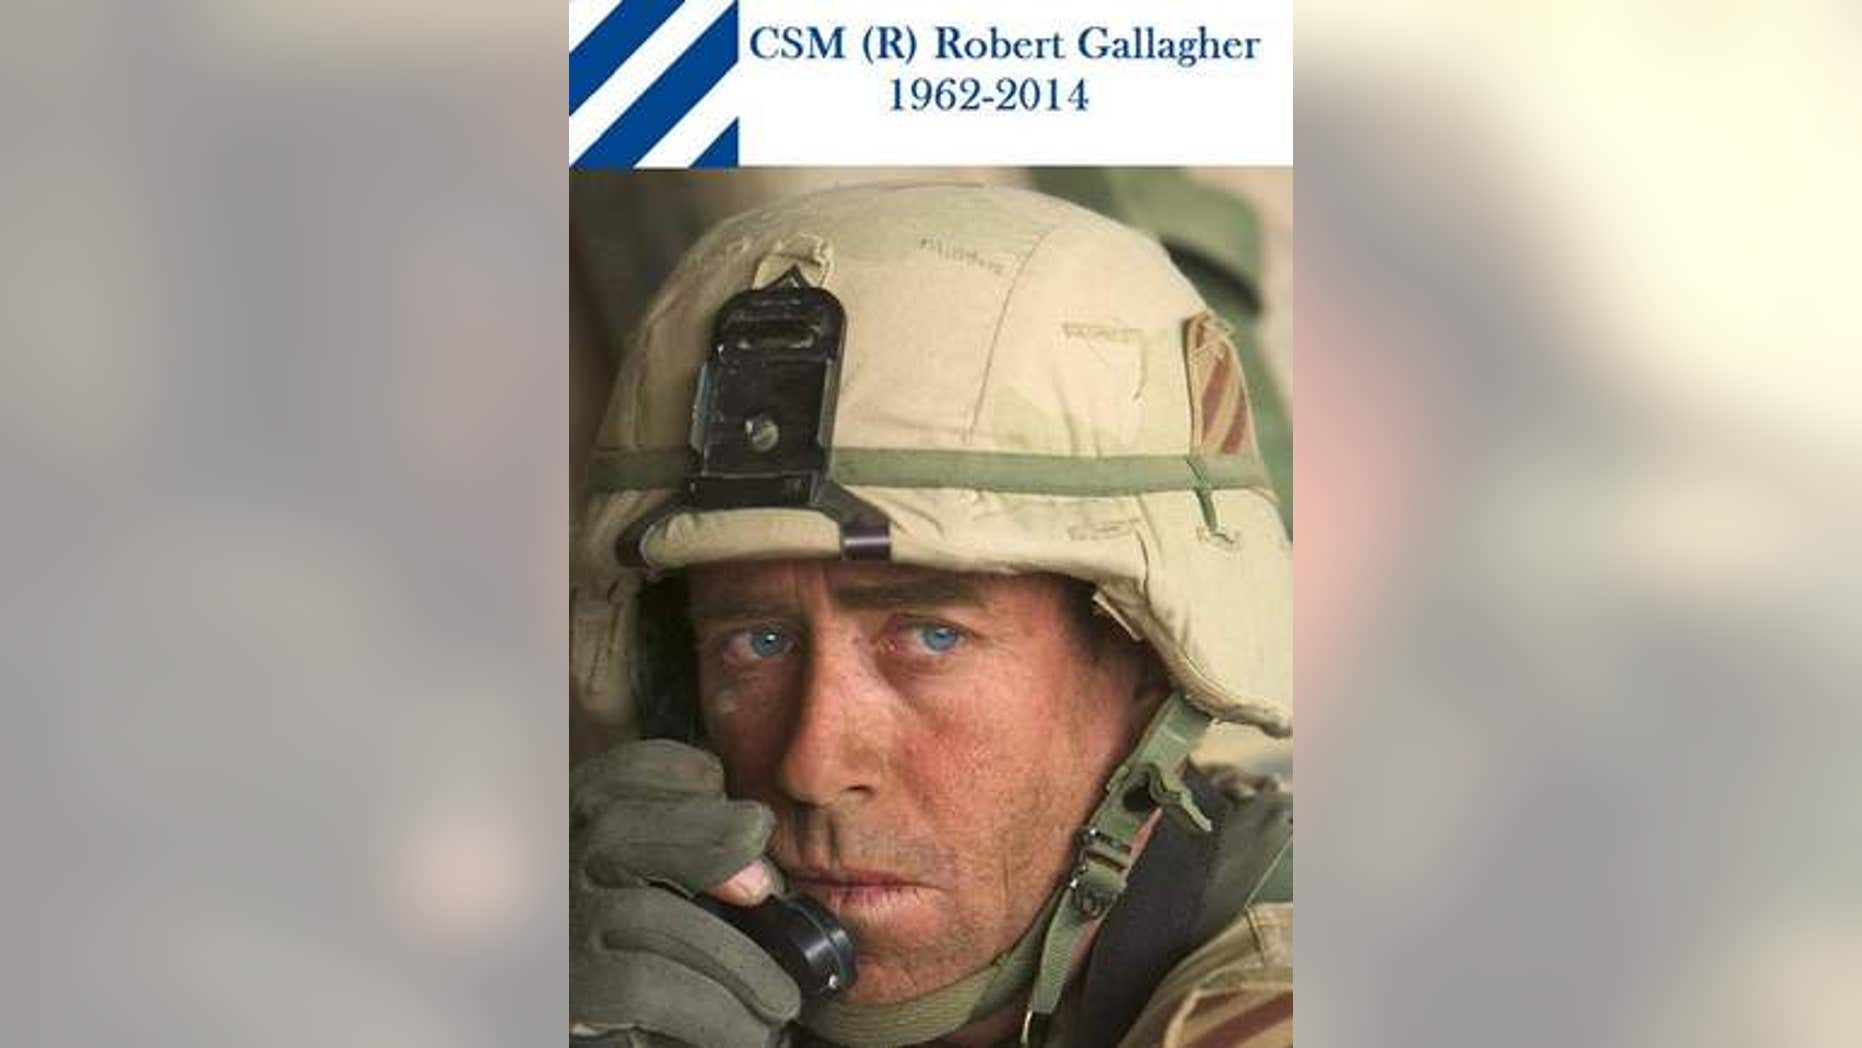 Command Sgt. Maj. Robert Gallagher was in Mogadishu, Somalia, in 1993 and in Baghdad for the U.S. invasion in 2003. When he retired, he worked to serve soldiers. He died on Oct. 13 at age 52. (3rd Infantry Division/Facebook)